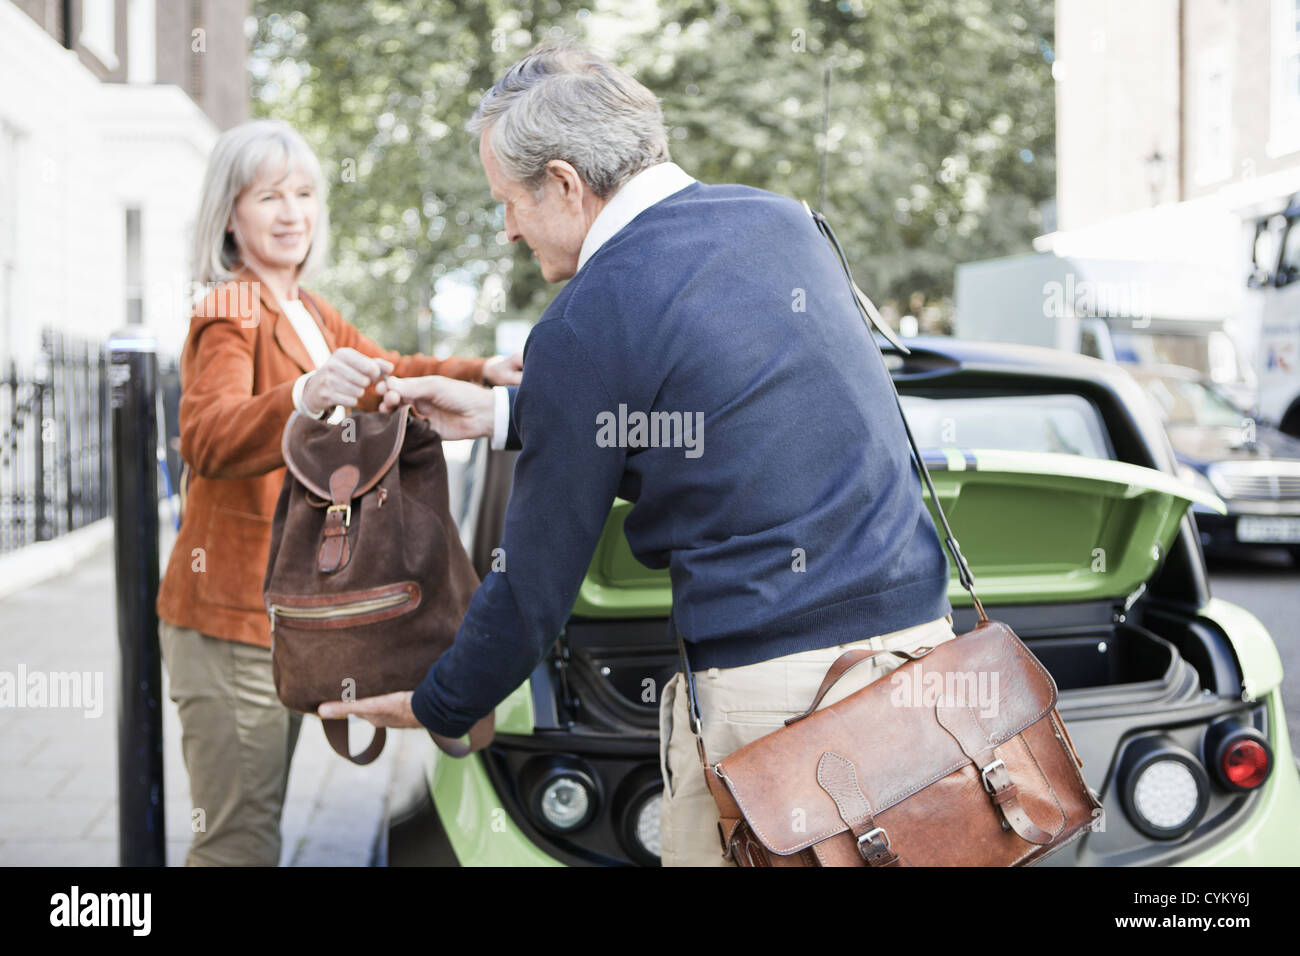 Couple loading car on city street - Stock Image